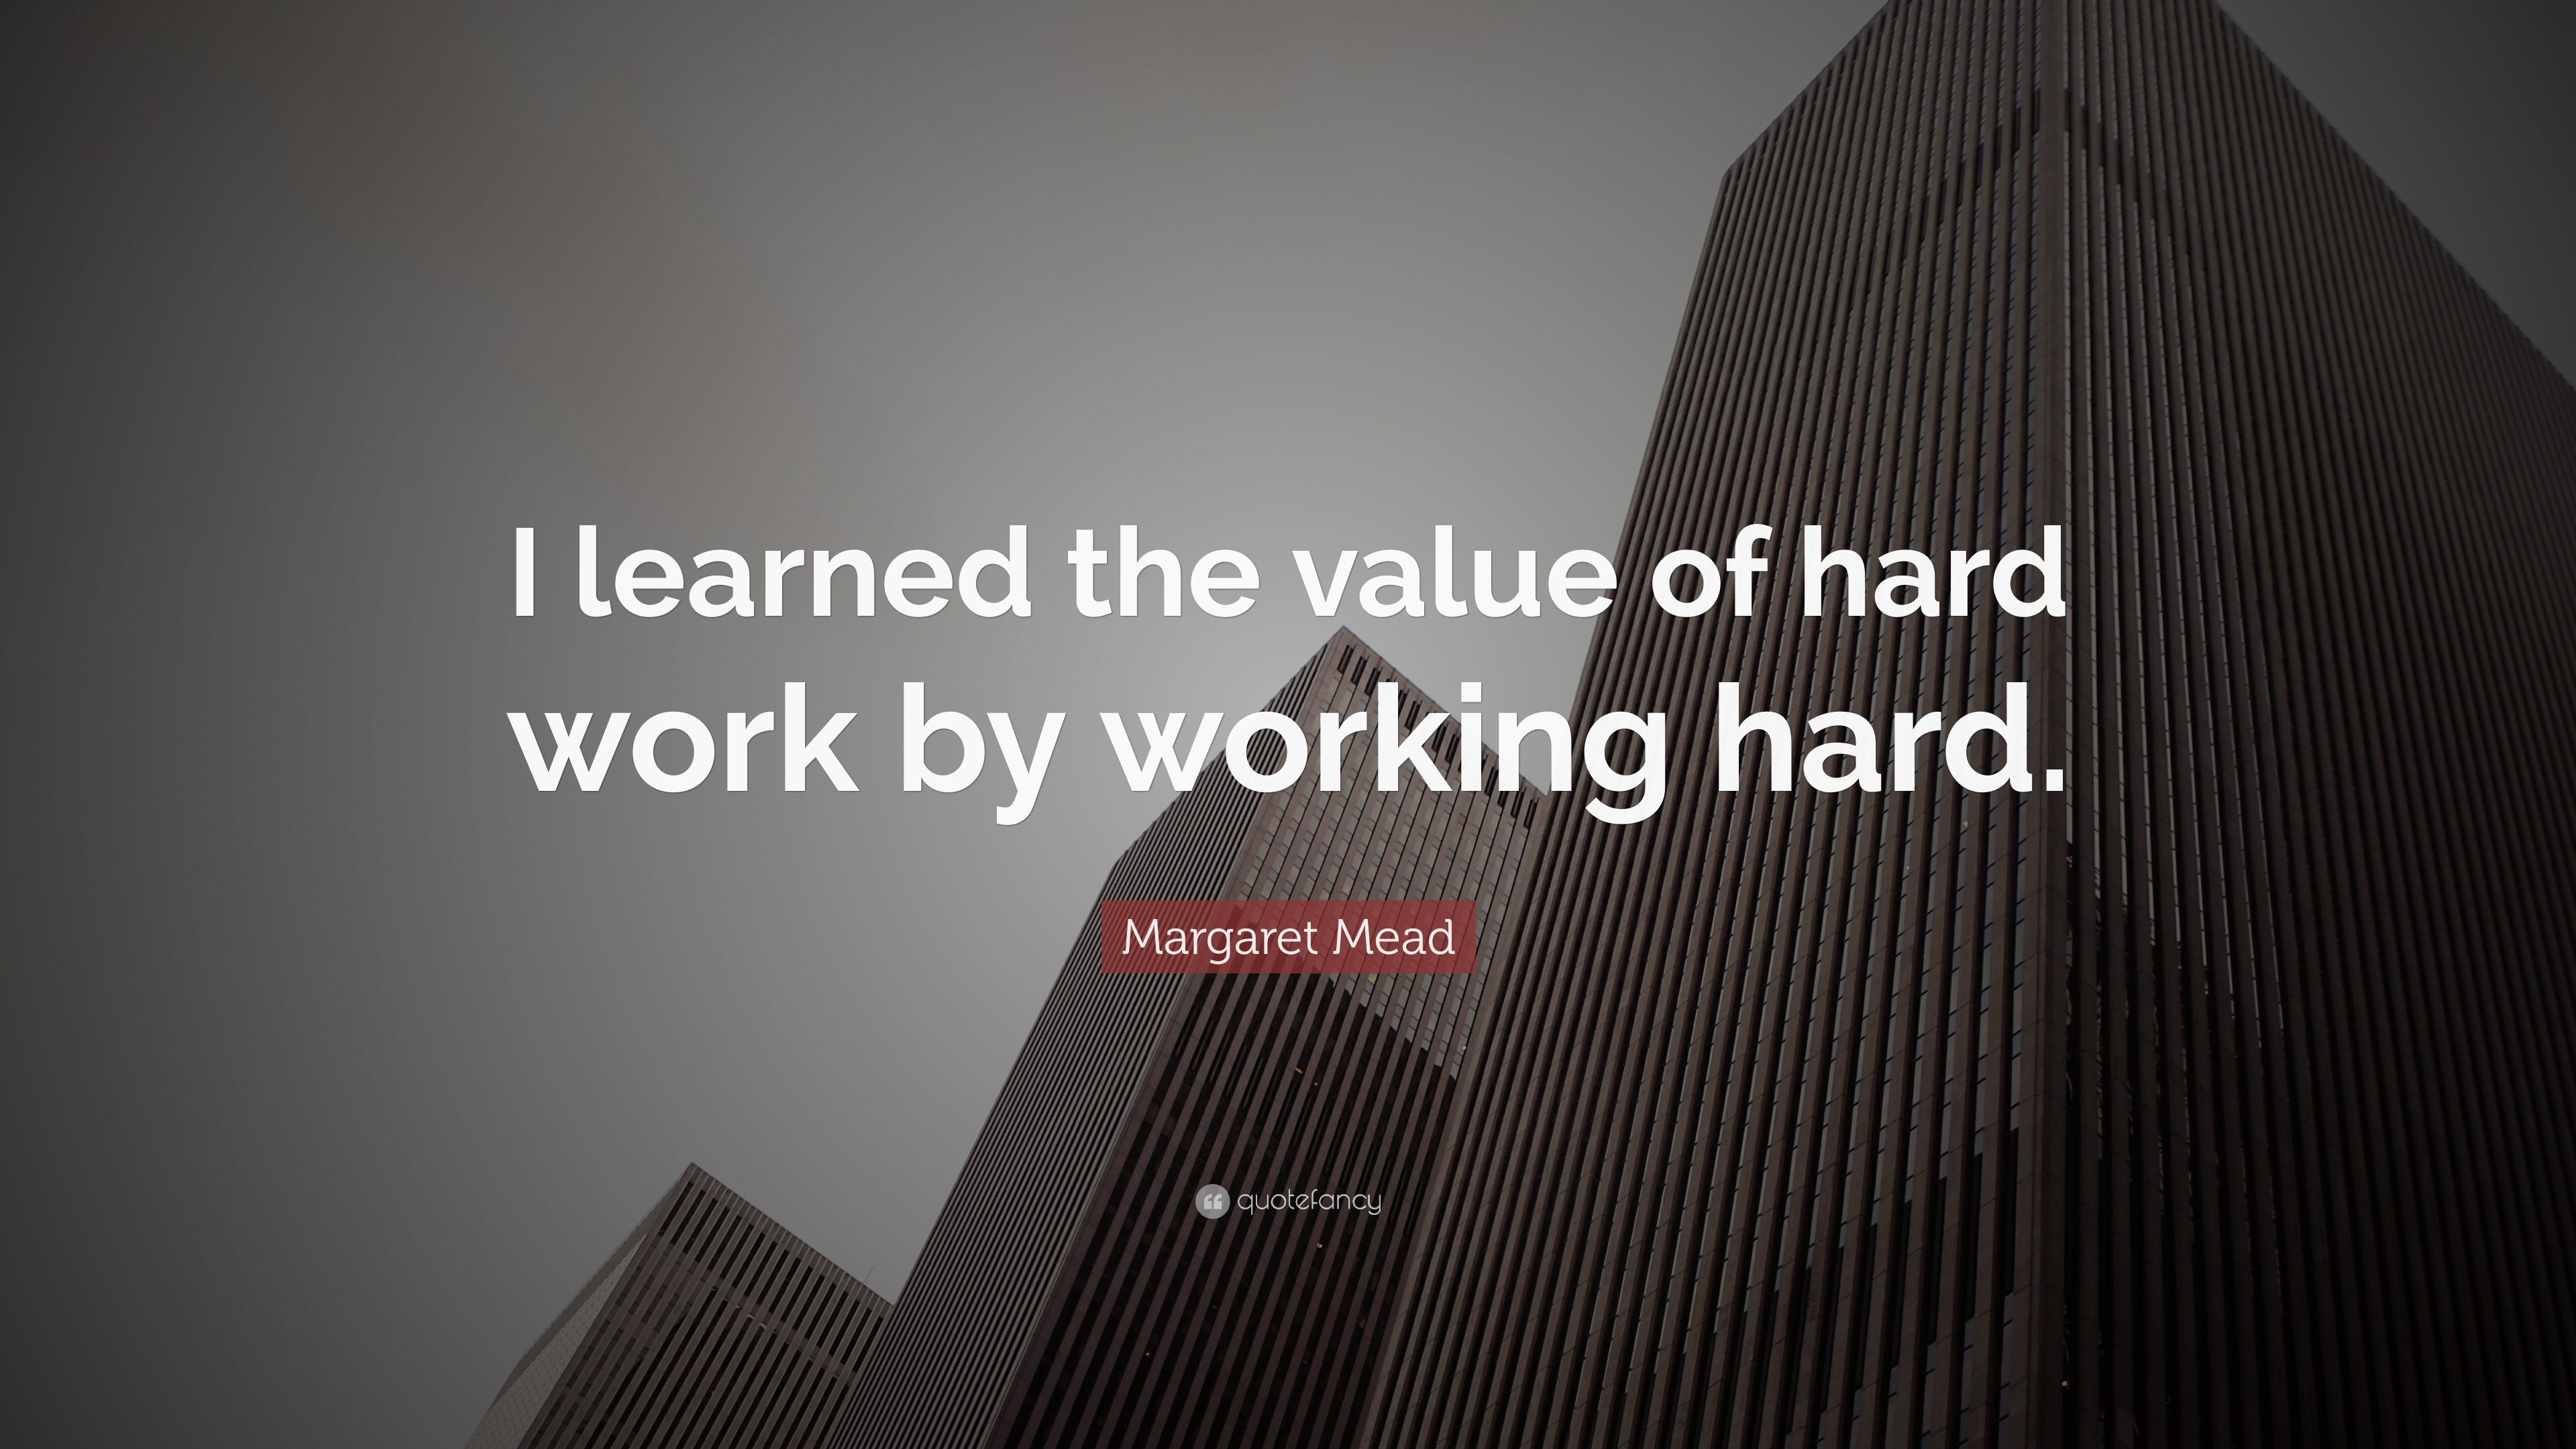 Quotes About Work (40 Wallpapers)